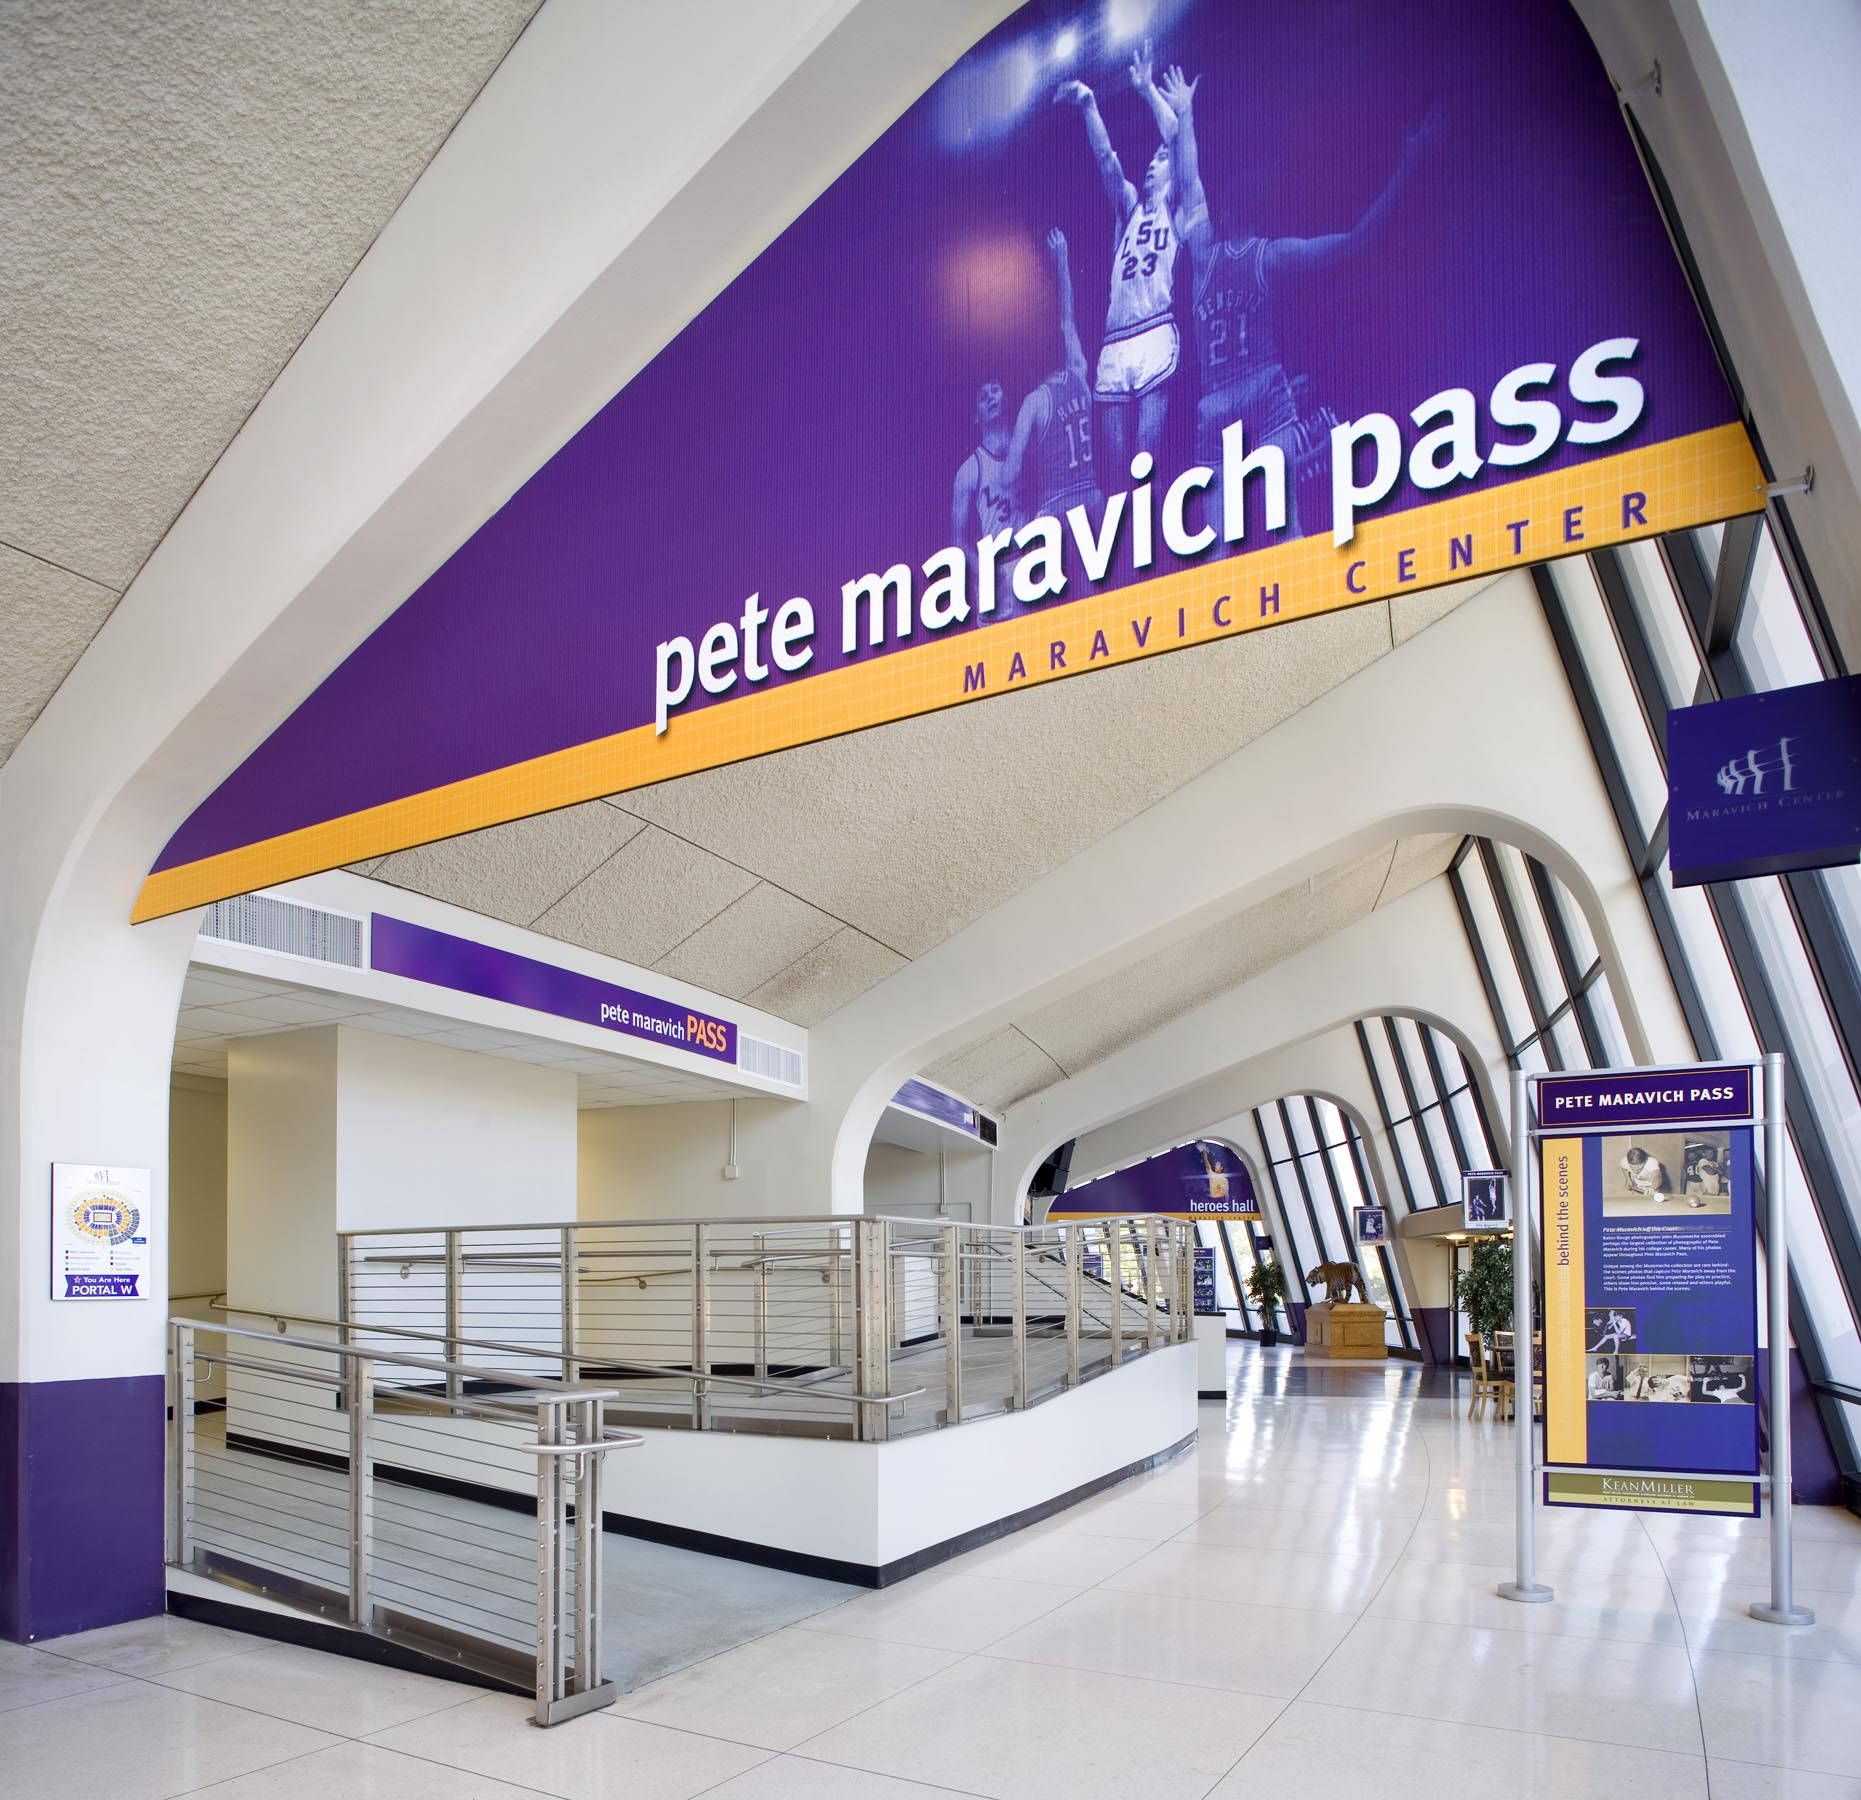 Pete Maravich Pass hallway at the Assembly Center